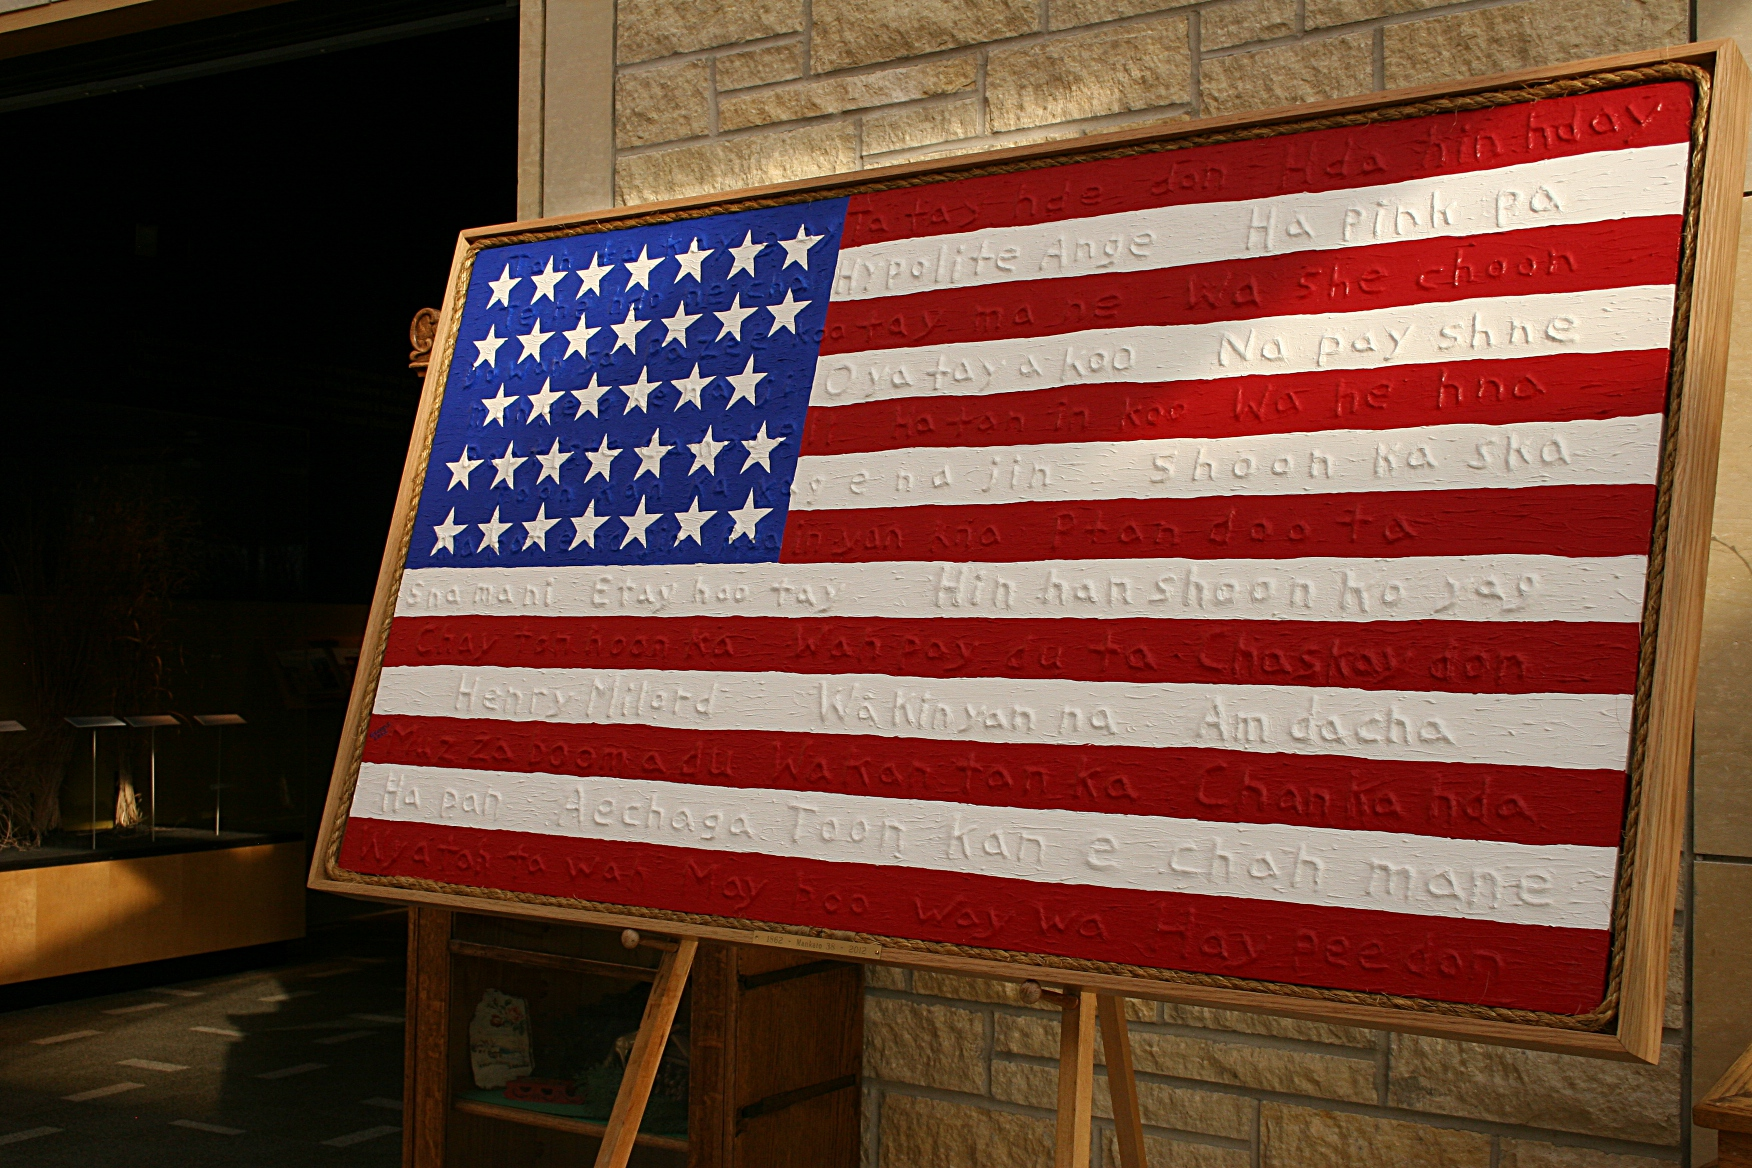 """Gordon M. Coons also created this 1862 U.S. flag which features the names of the 38 Dakota who were executed during a mass hanging in Mankato. """"...the 38 Dakota are woven into the history of the U.S. and appear to be woven into the flag,"""" information posted with the display at the Traverse des Sioux Treaty Center states."""